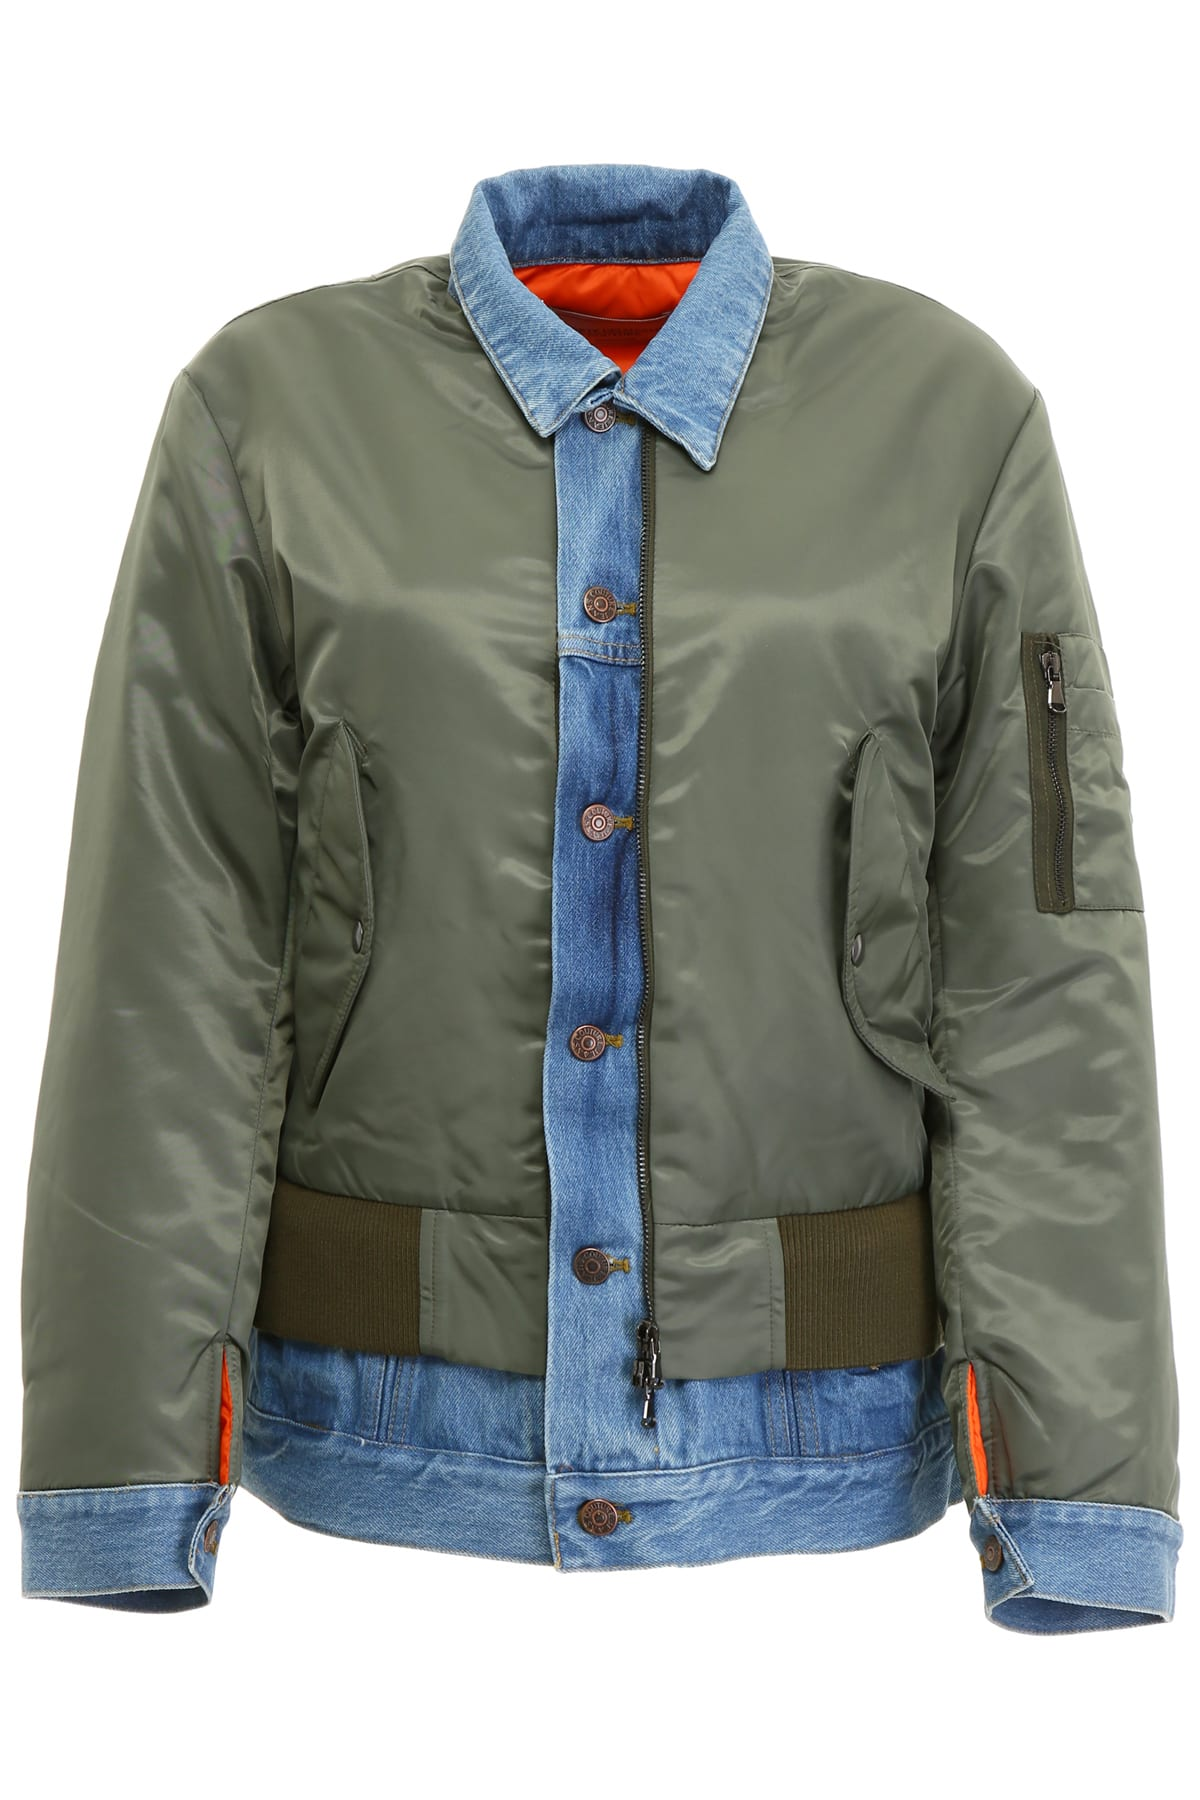 Photo of  Forte Couture Bomber Jacket- shop Forte Couture jackets online sales